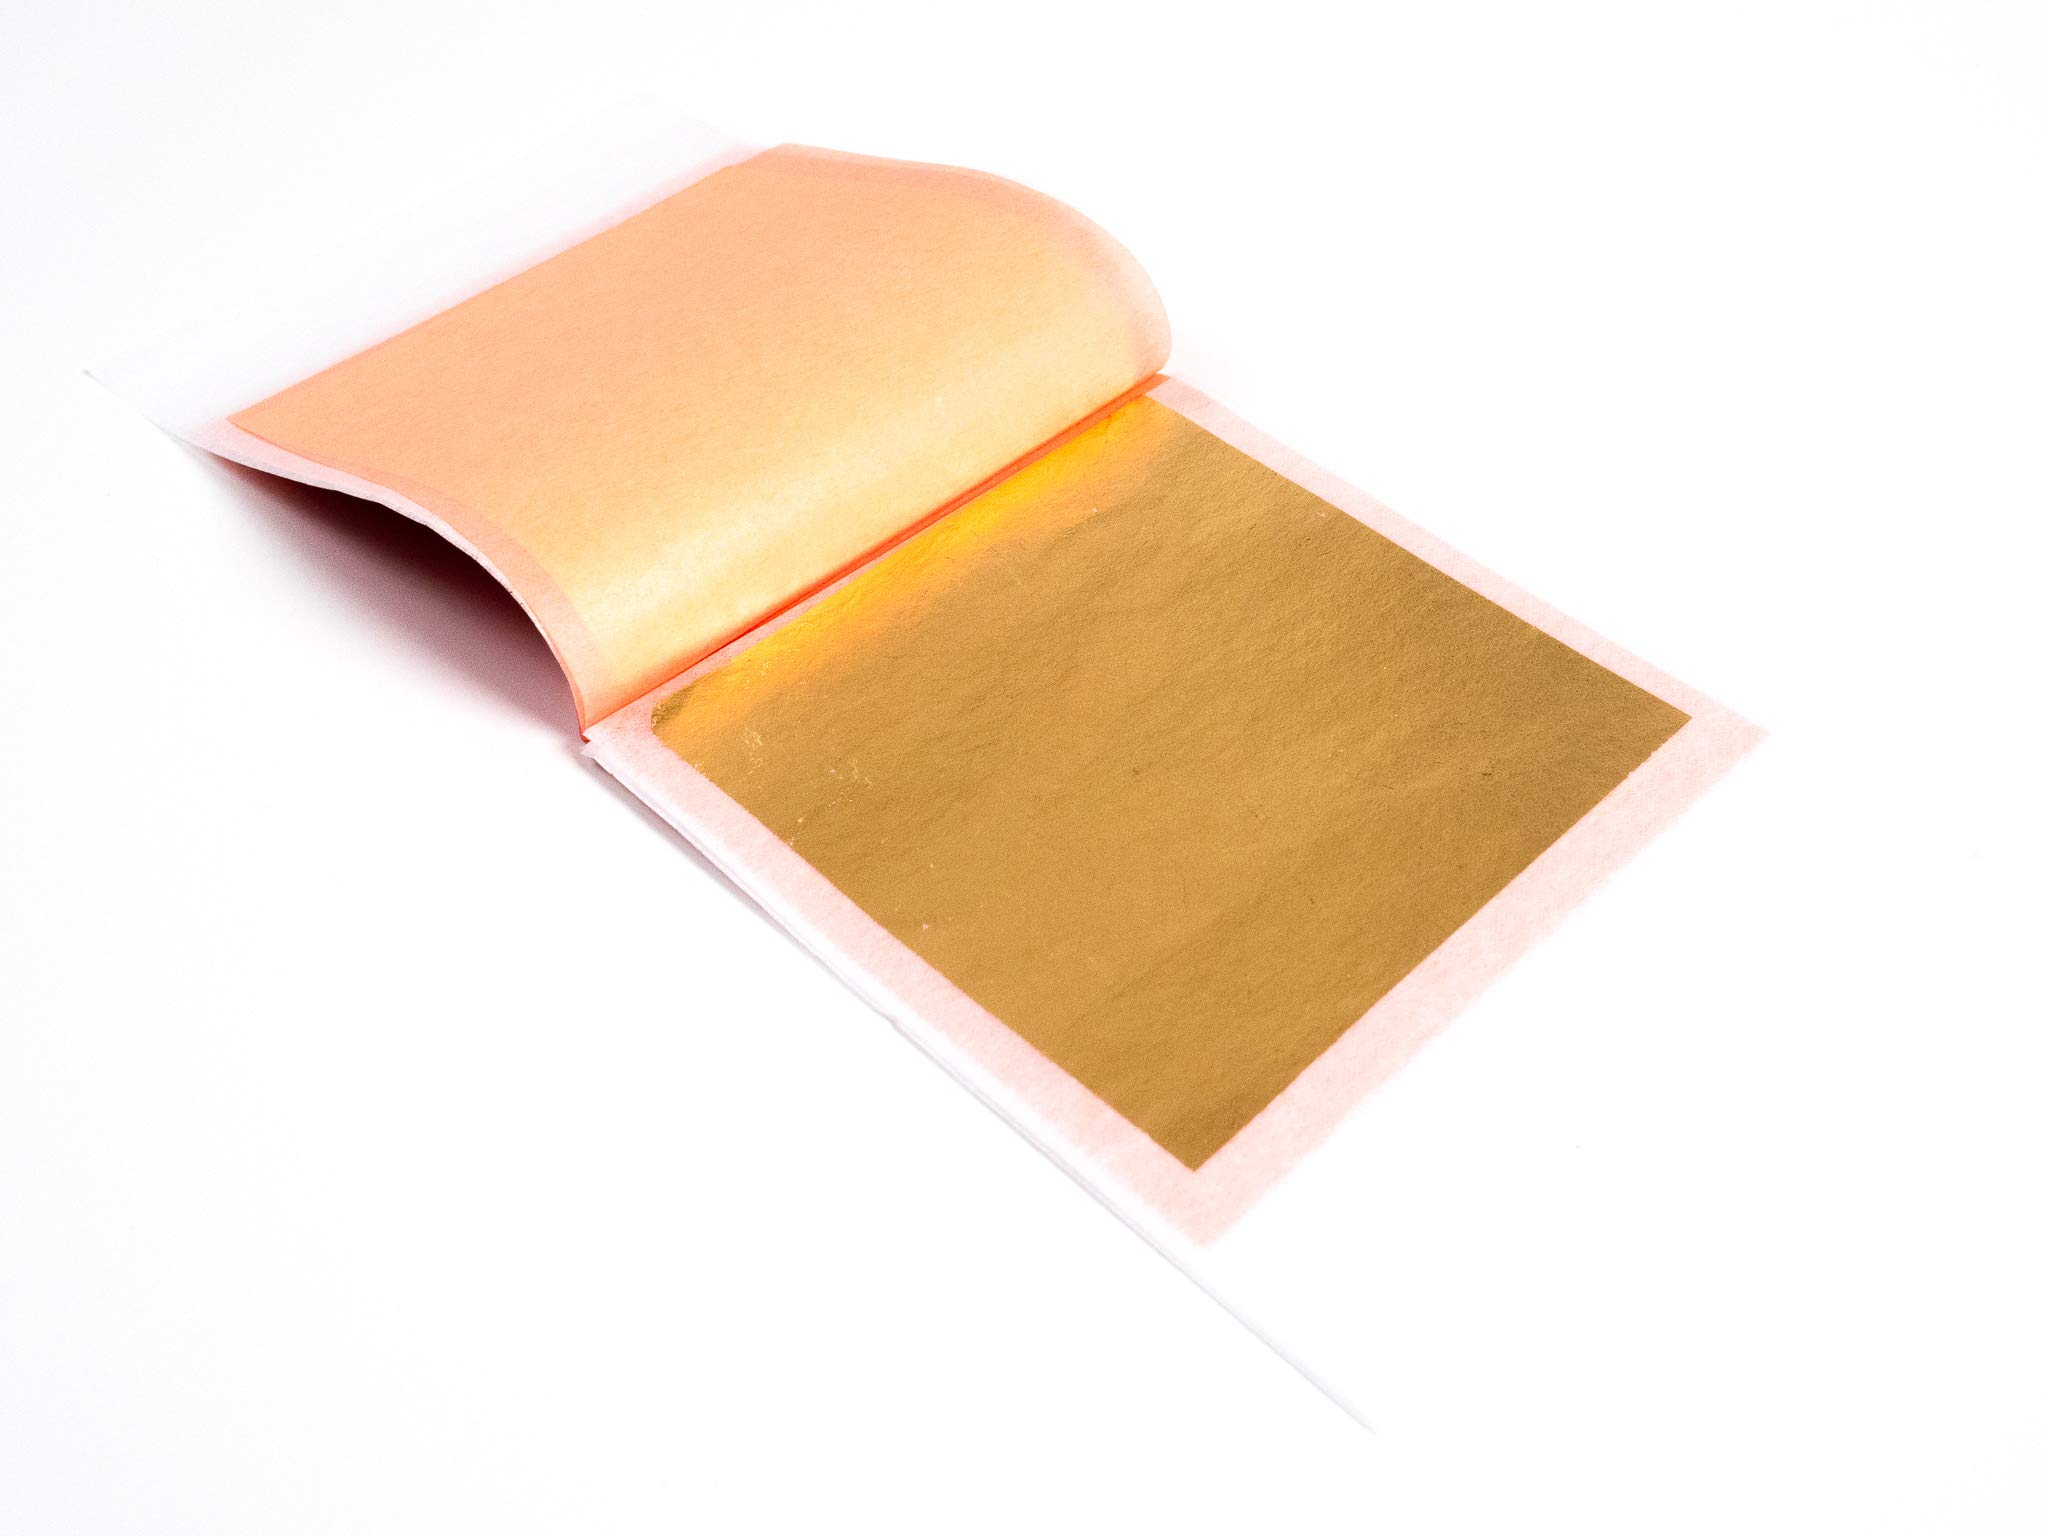 24 Karat Edible Gold Leaf by Slofoodgroup (10 Soft Press Transfer Sheets of Gold Leaf per Book) 3.15 in x 3.15in Lightly Attached Transfer Leaf Sheets